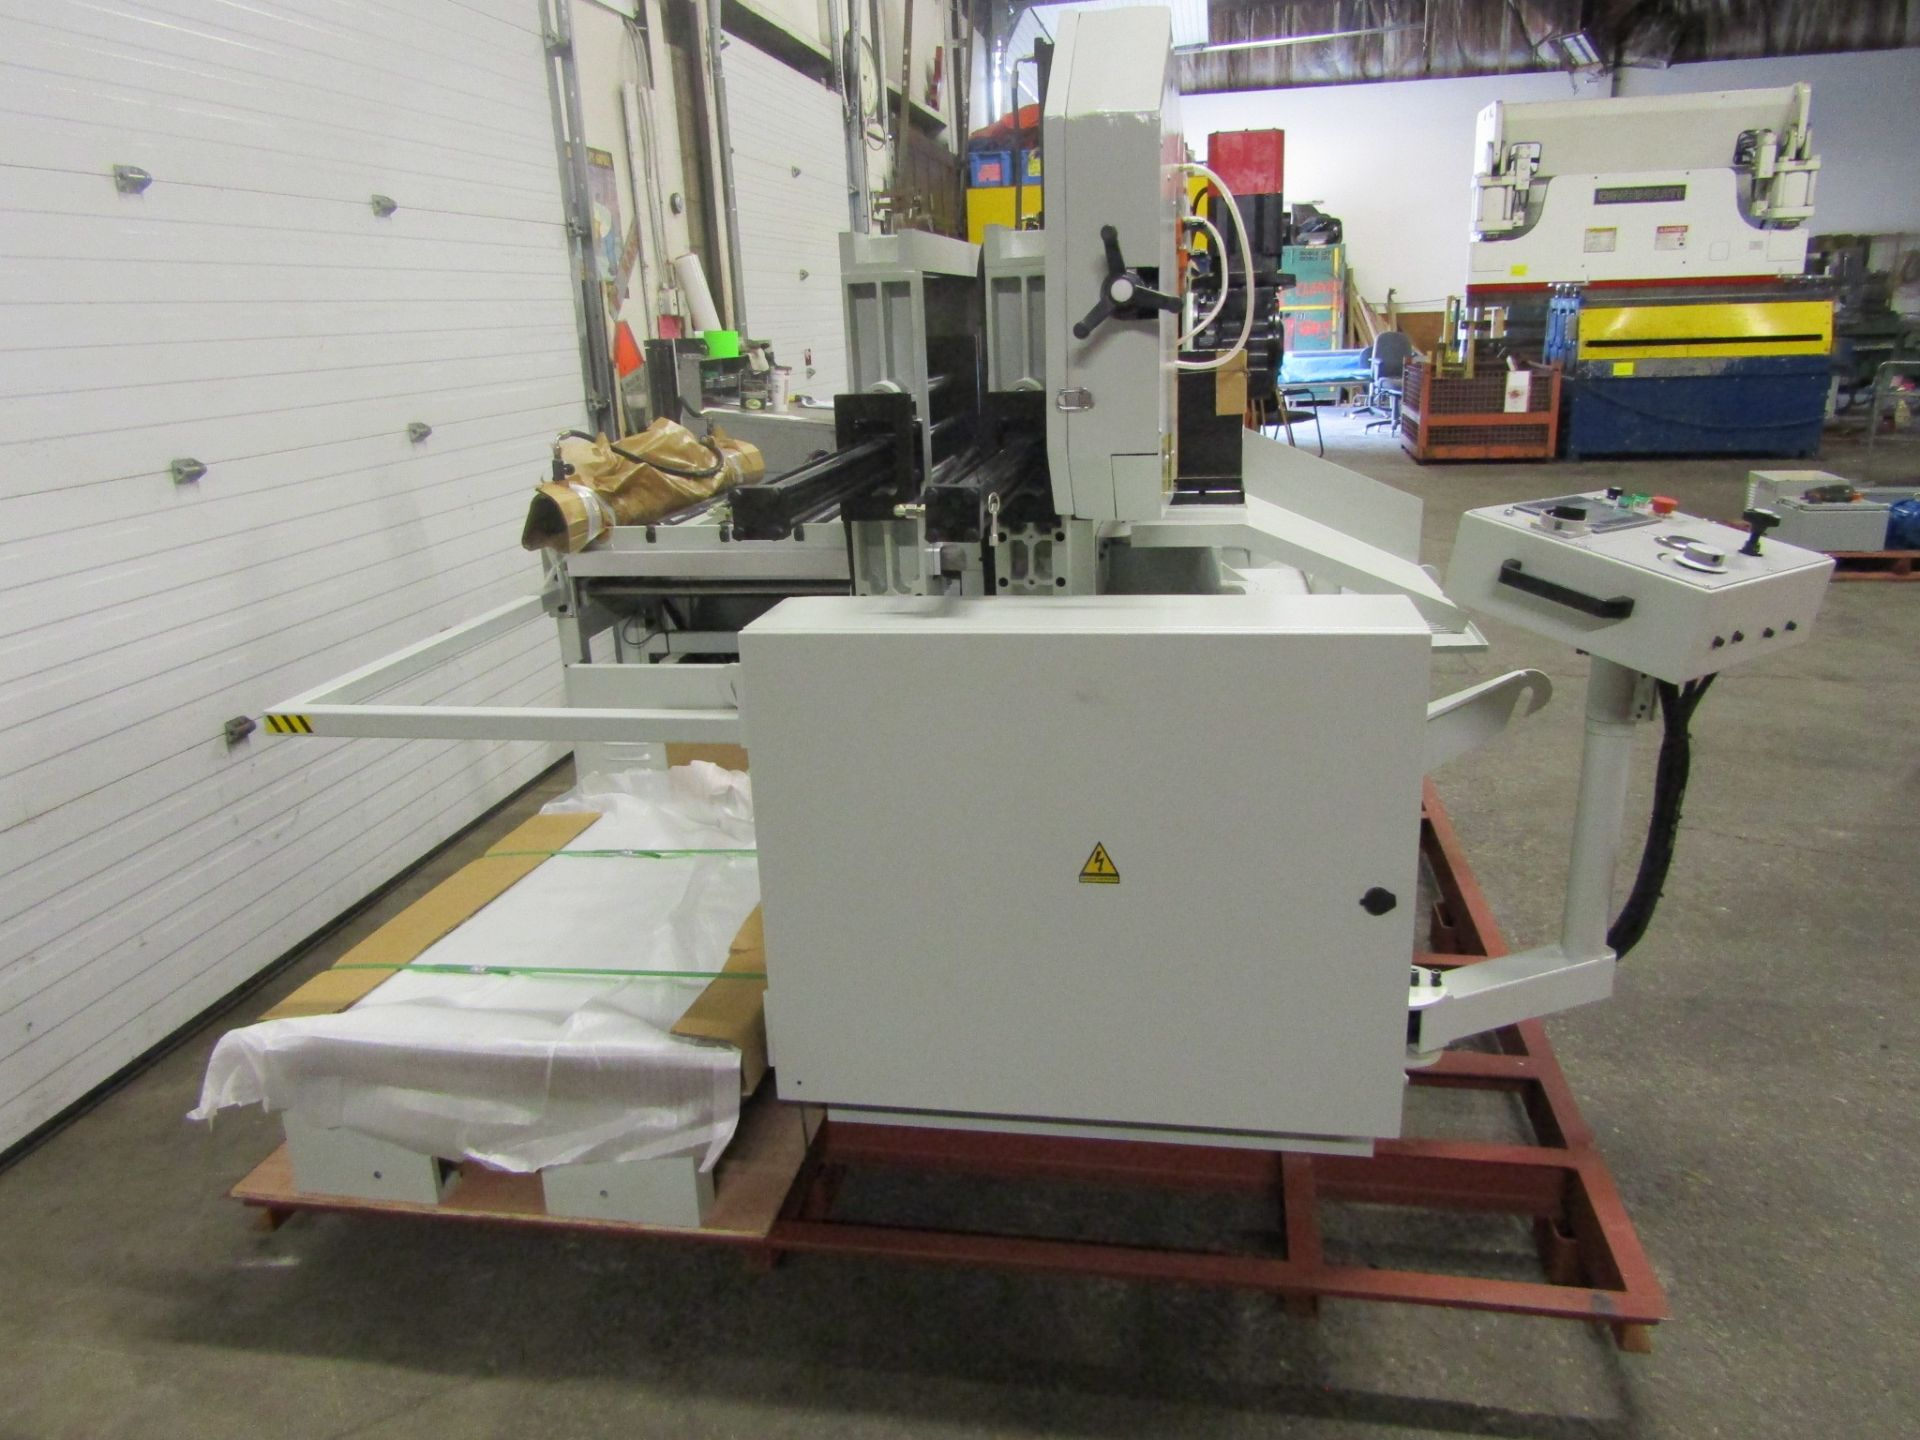 Lot 255 - Magnum BSM-2618A Fully Automatic CNC Horizontal Band Saw - 26 X 18 inch HUGE CUTTING CAPACITY -